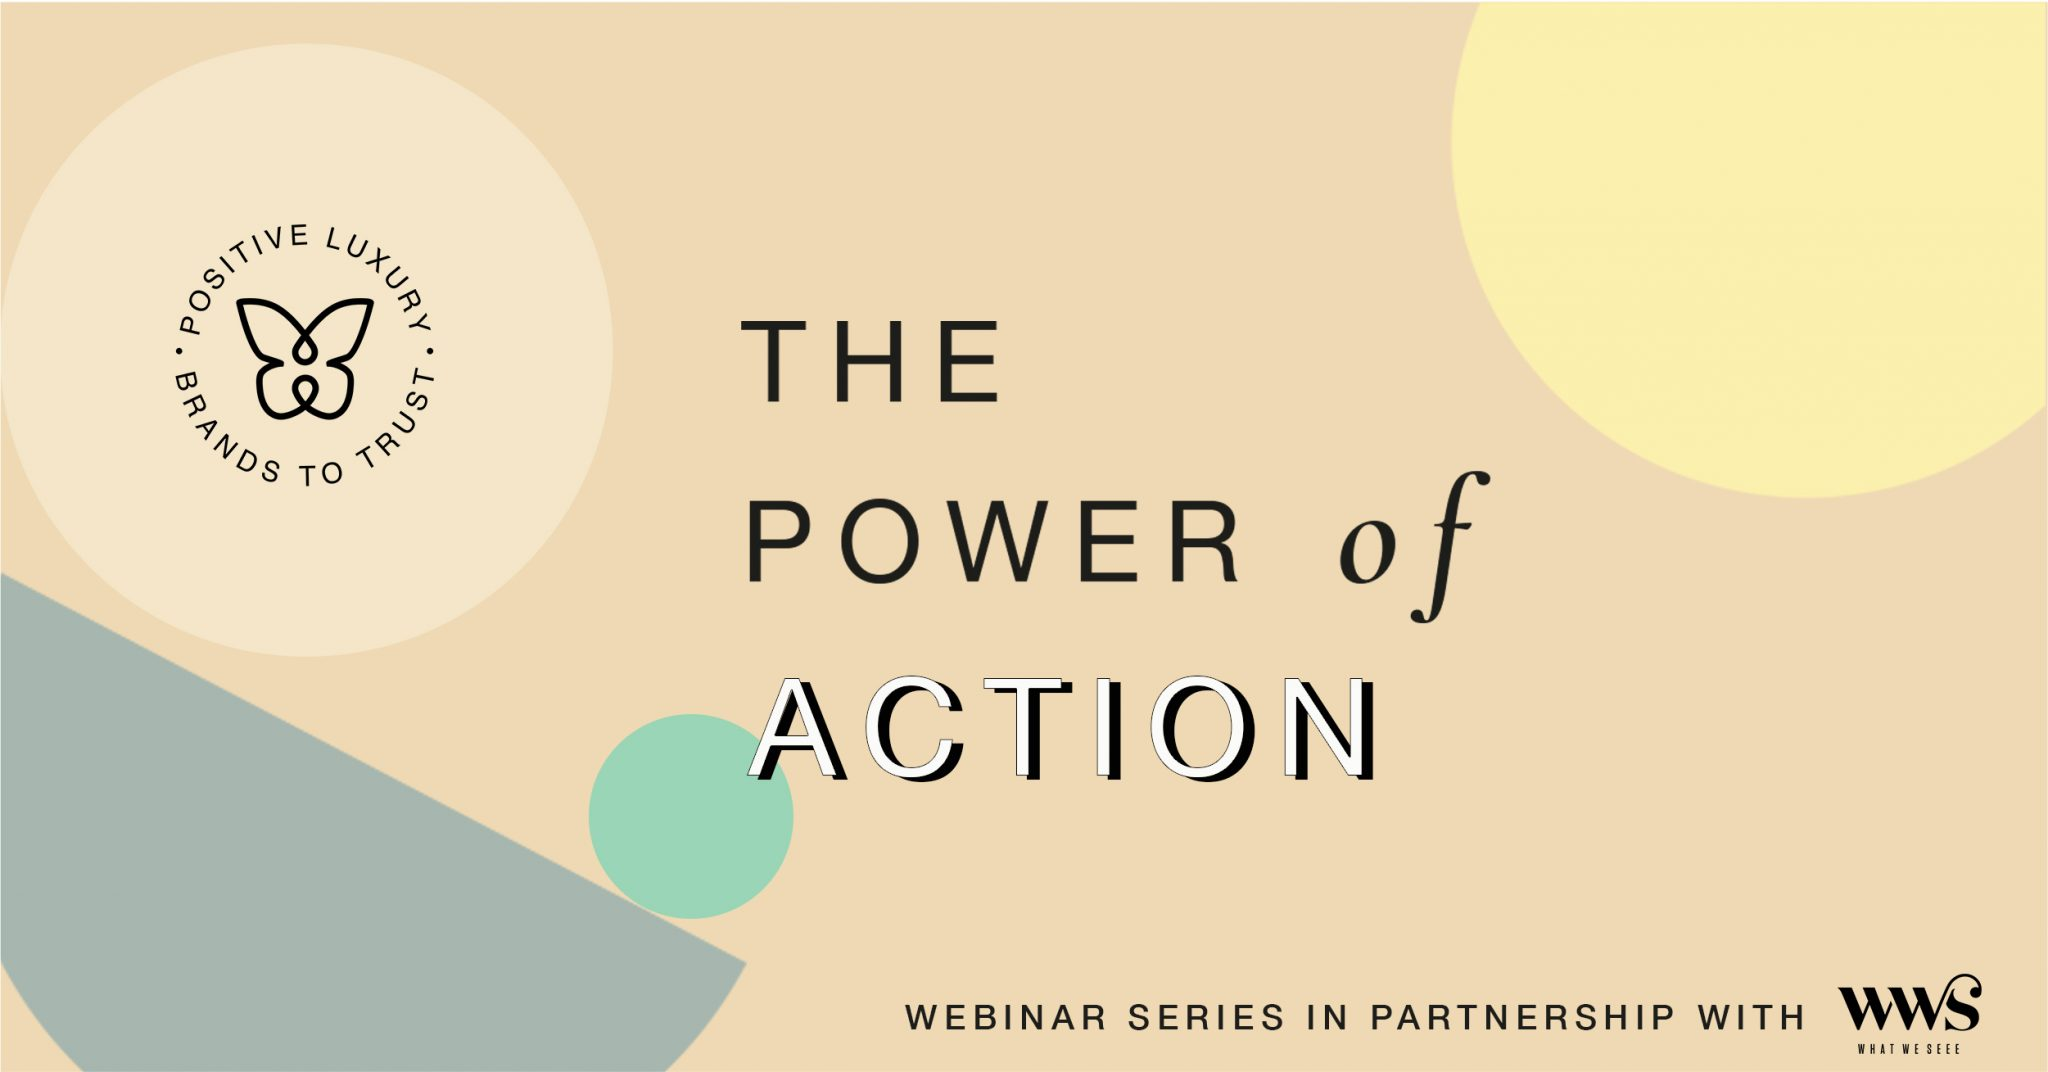 In case you missed it: Watch The Power of Action